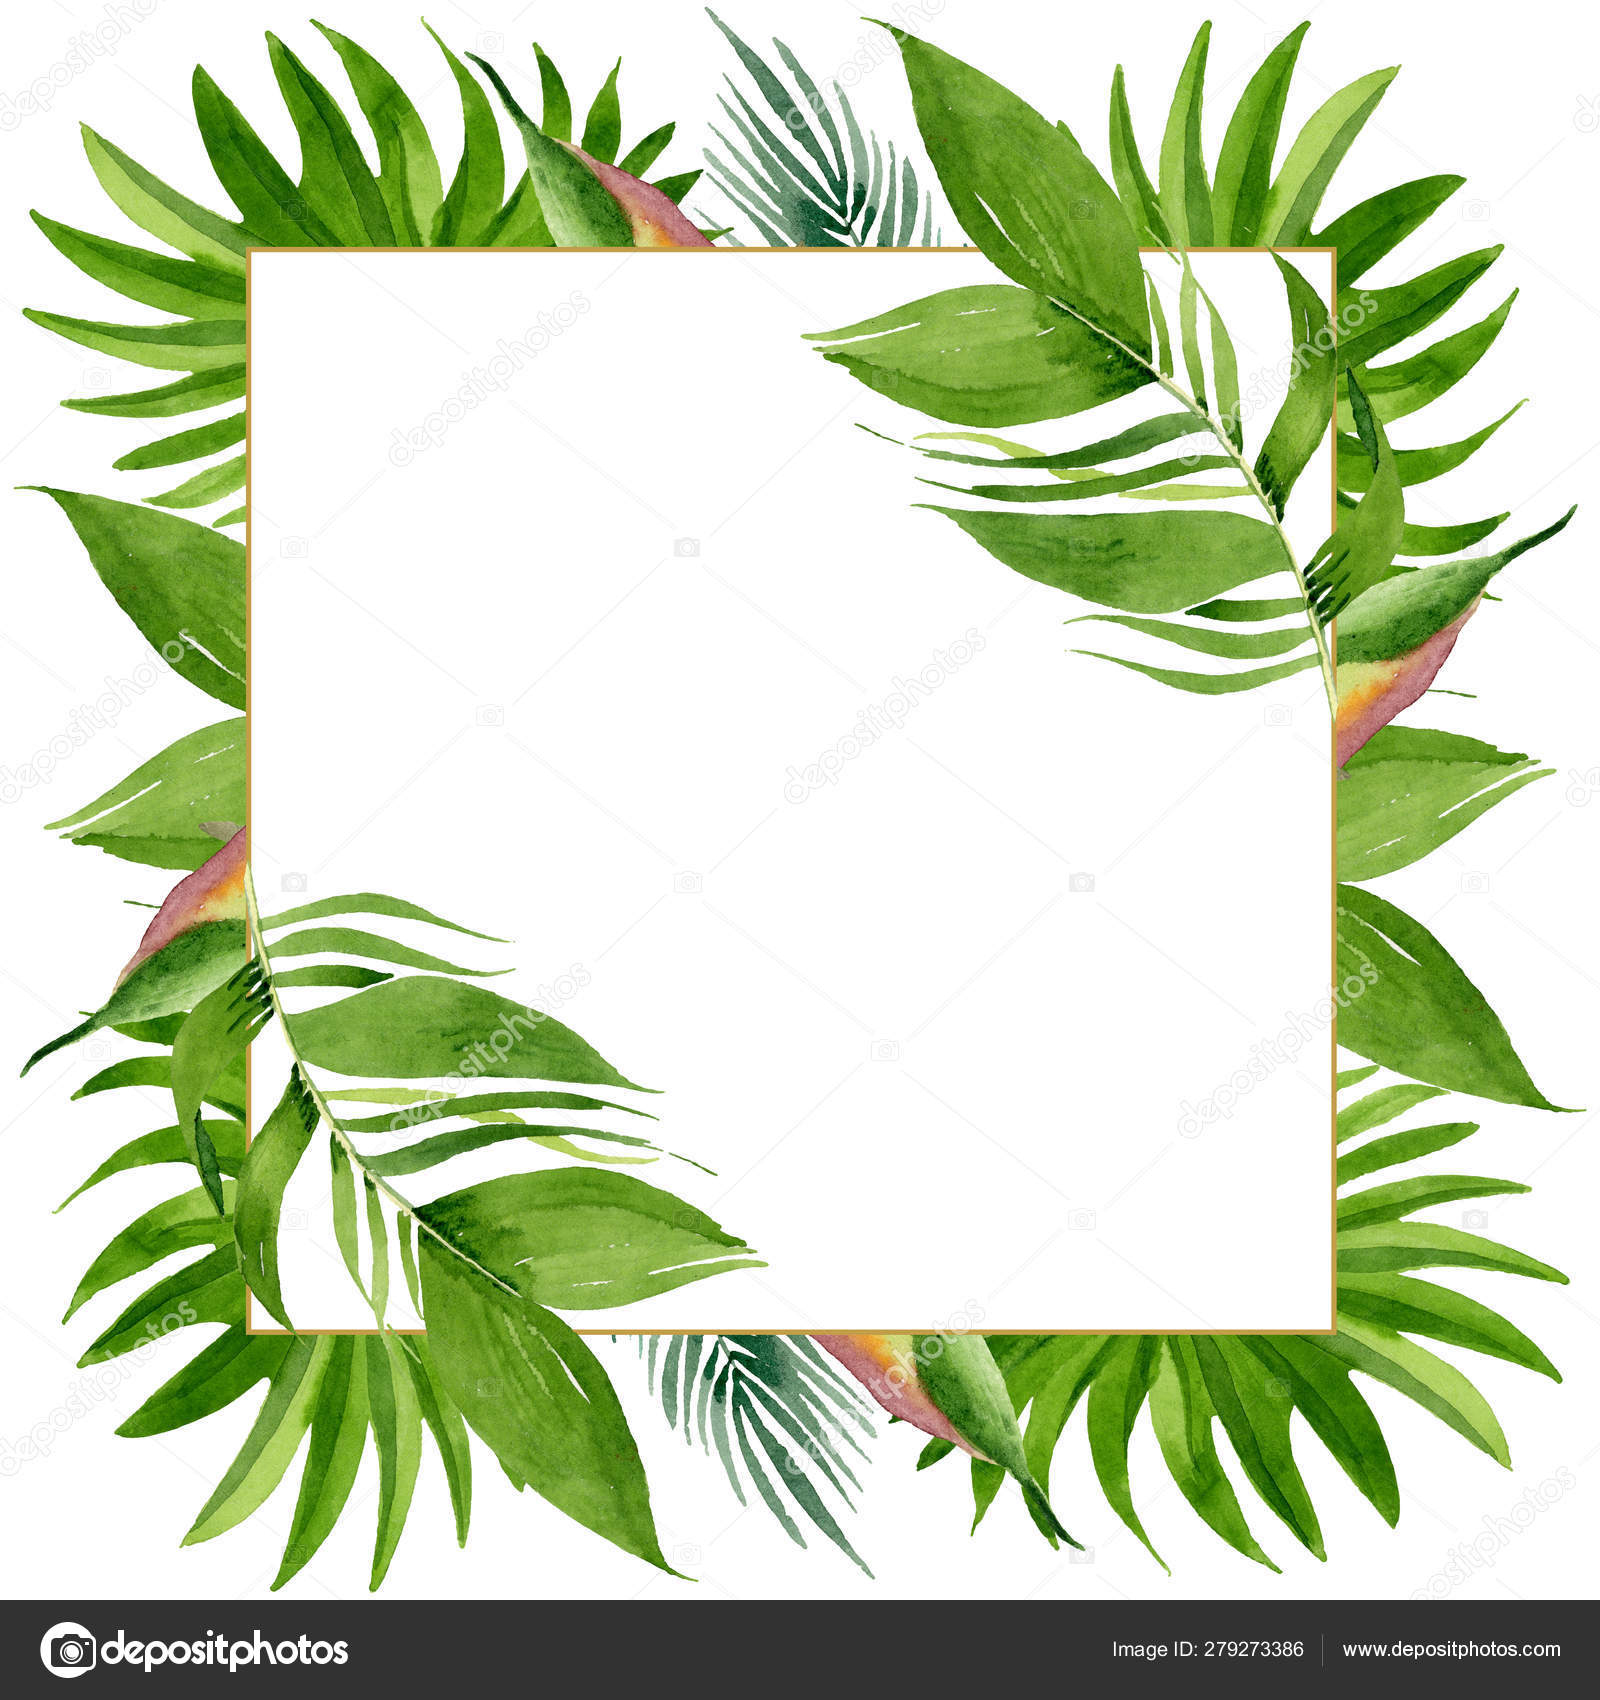 Small Trees For Borders: Palm Beach Tree Leaves Jungle Botanical. Watercolor